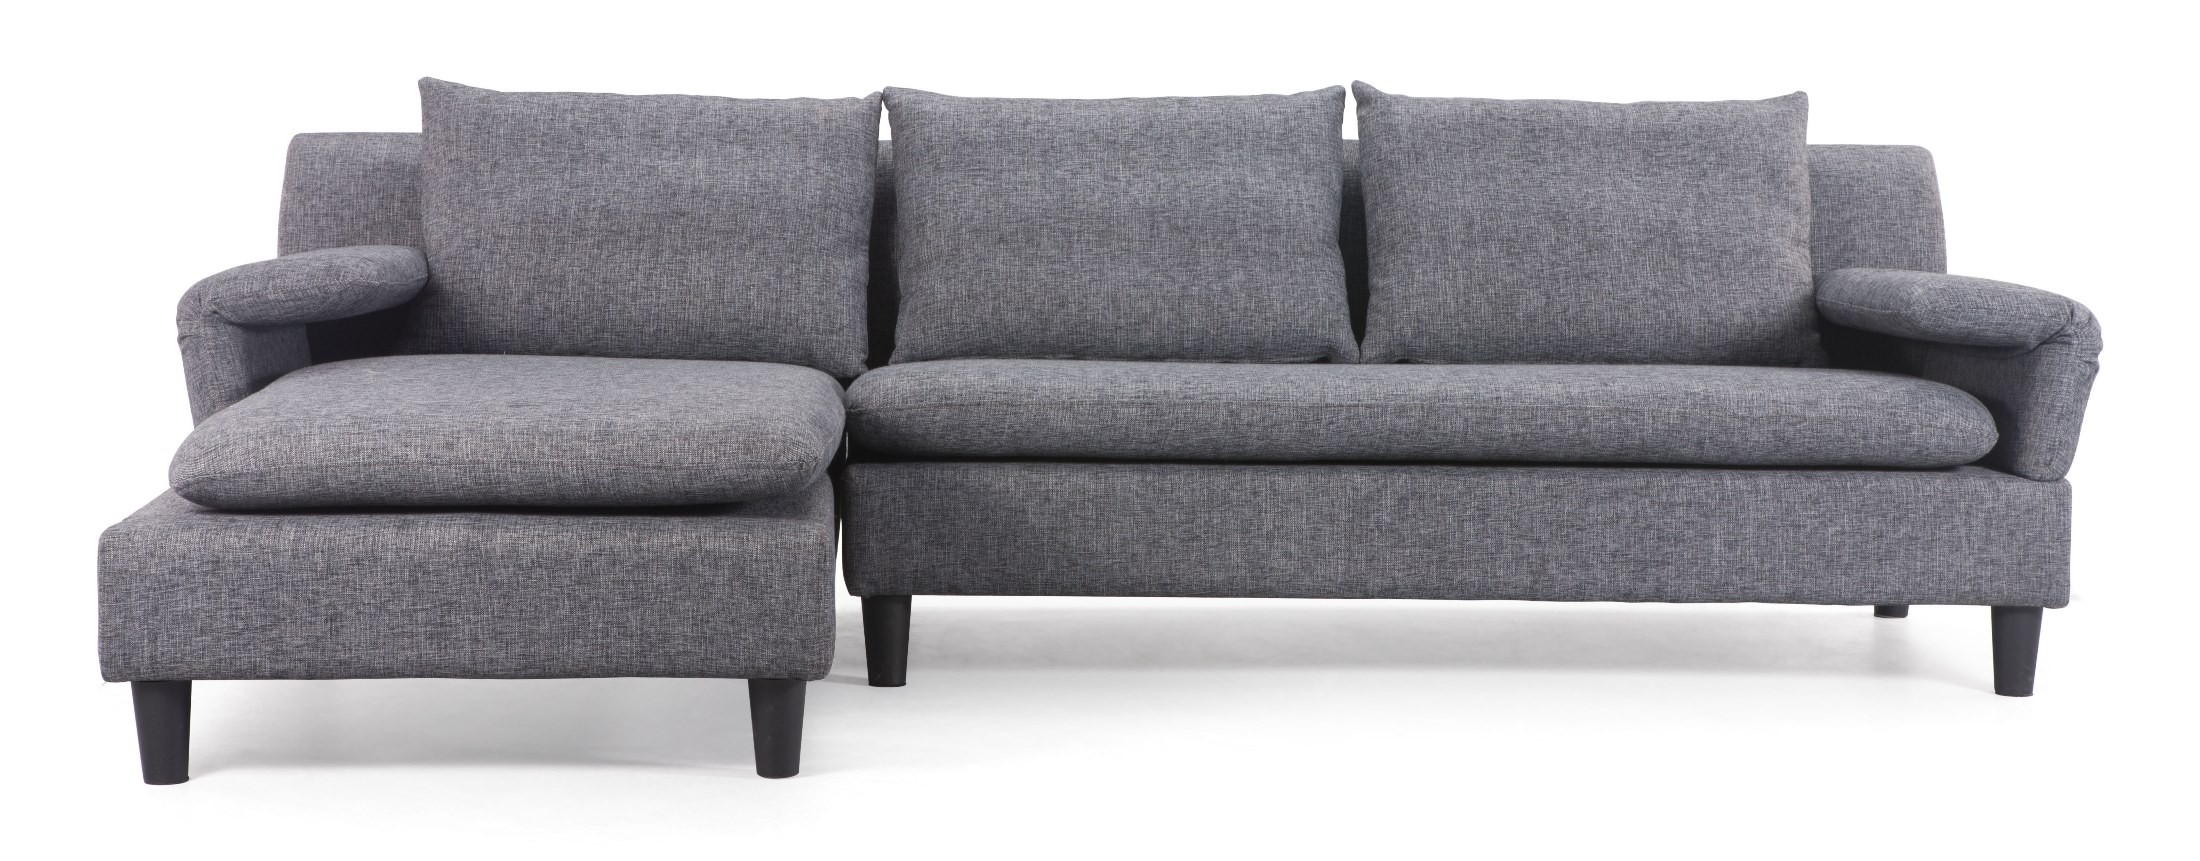 Axiom ash gray sofa from zuo mod 900600 coleman furniture for Gray sofas for sale